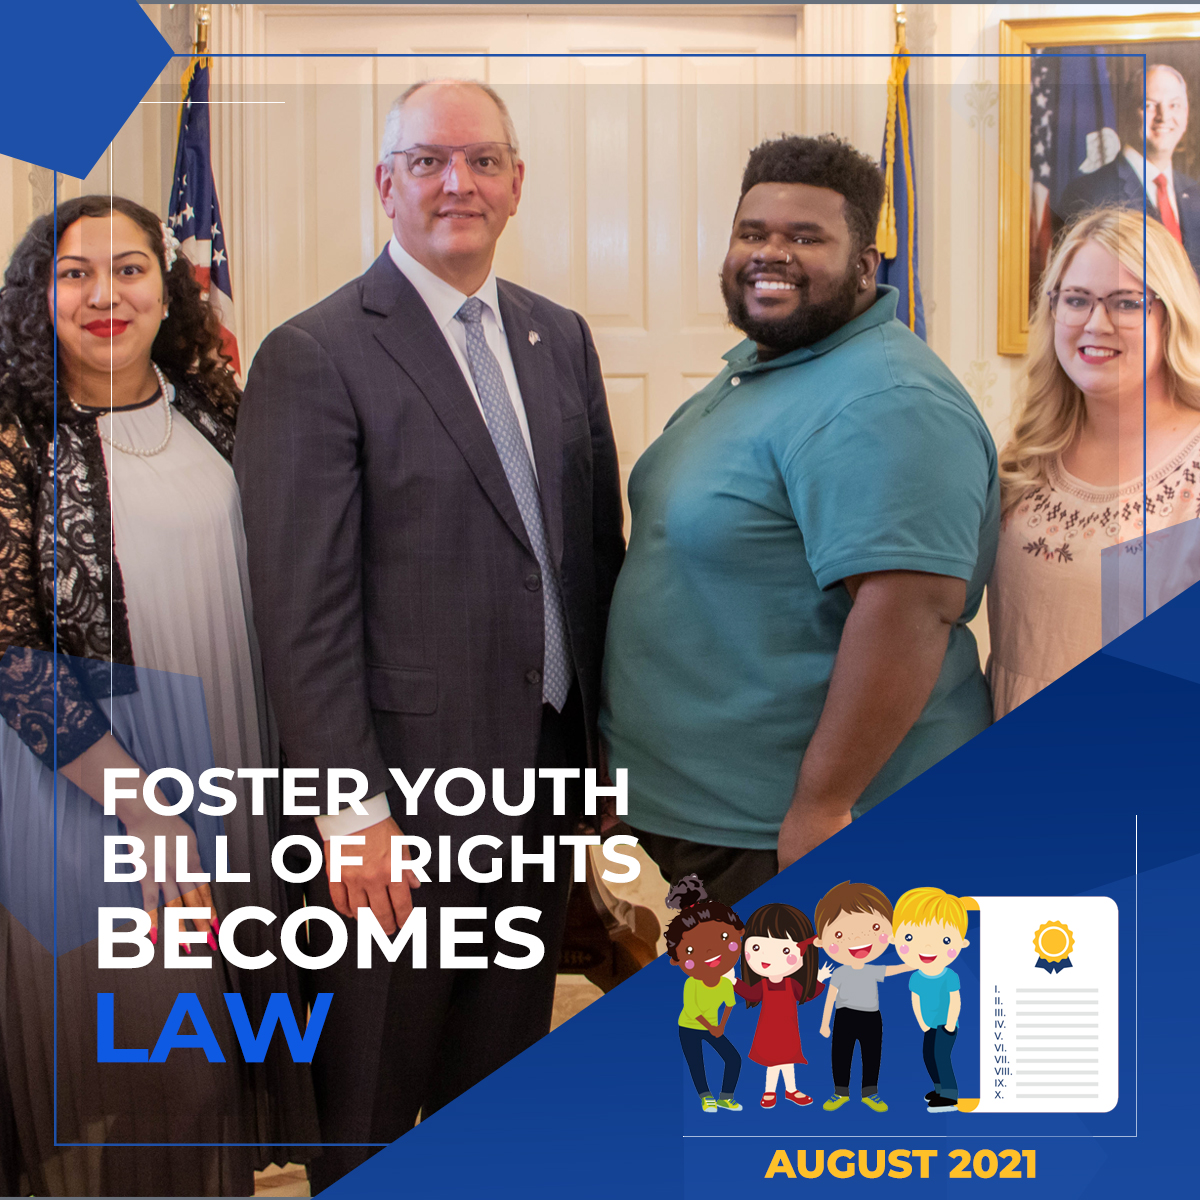 Louisiana Fosters – Foster Youth Bill of Rights Becomes Law